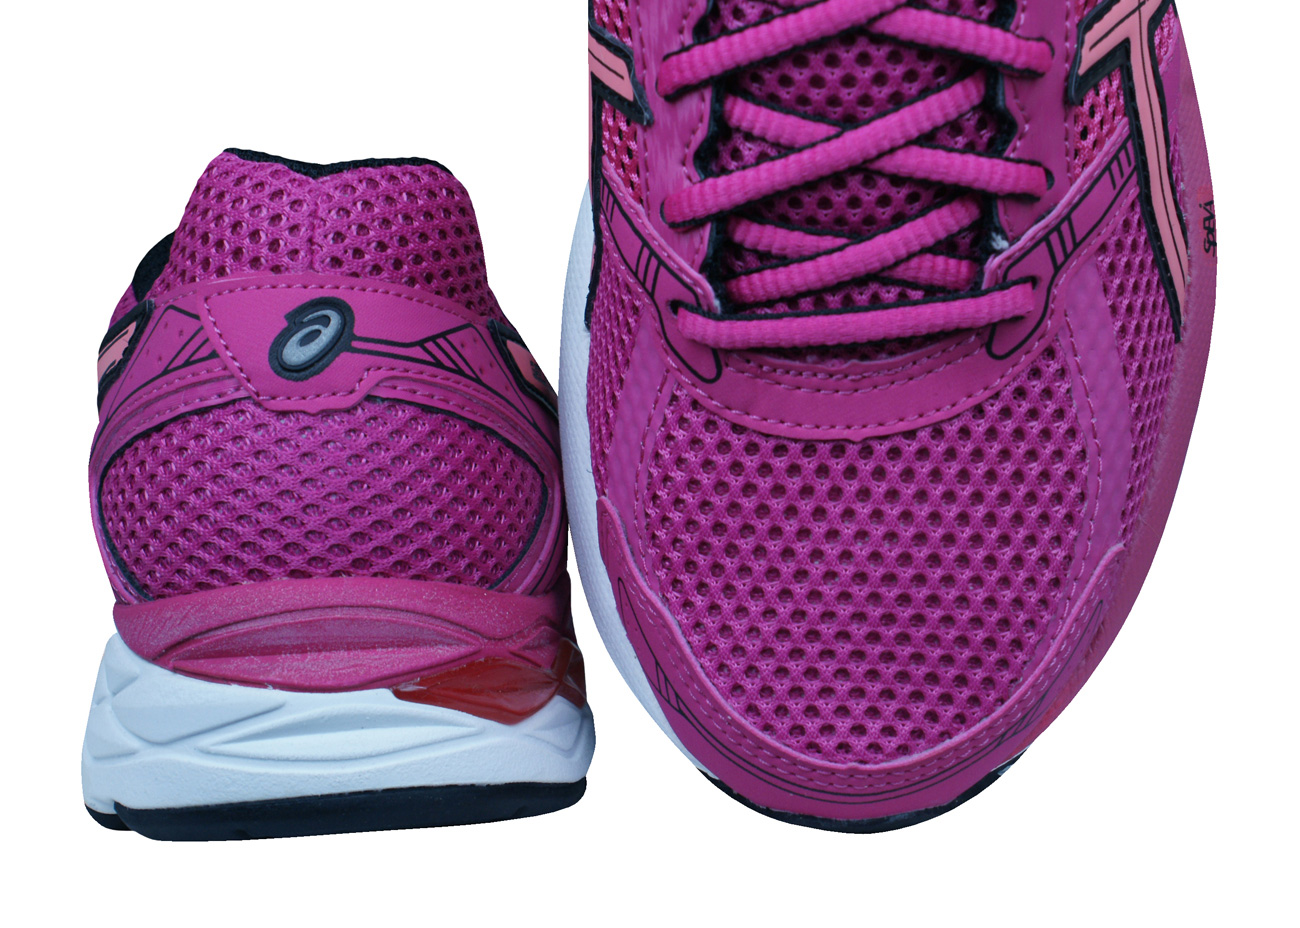 At Zone Fuchsia Trainers Womens Qhwrwzt8 Asics 4 Running Gel Shoes pCAwpqx